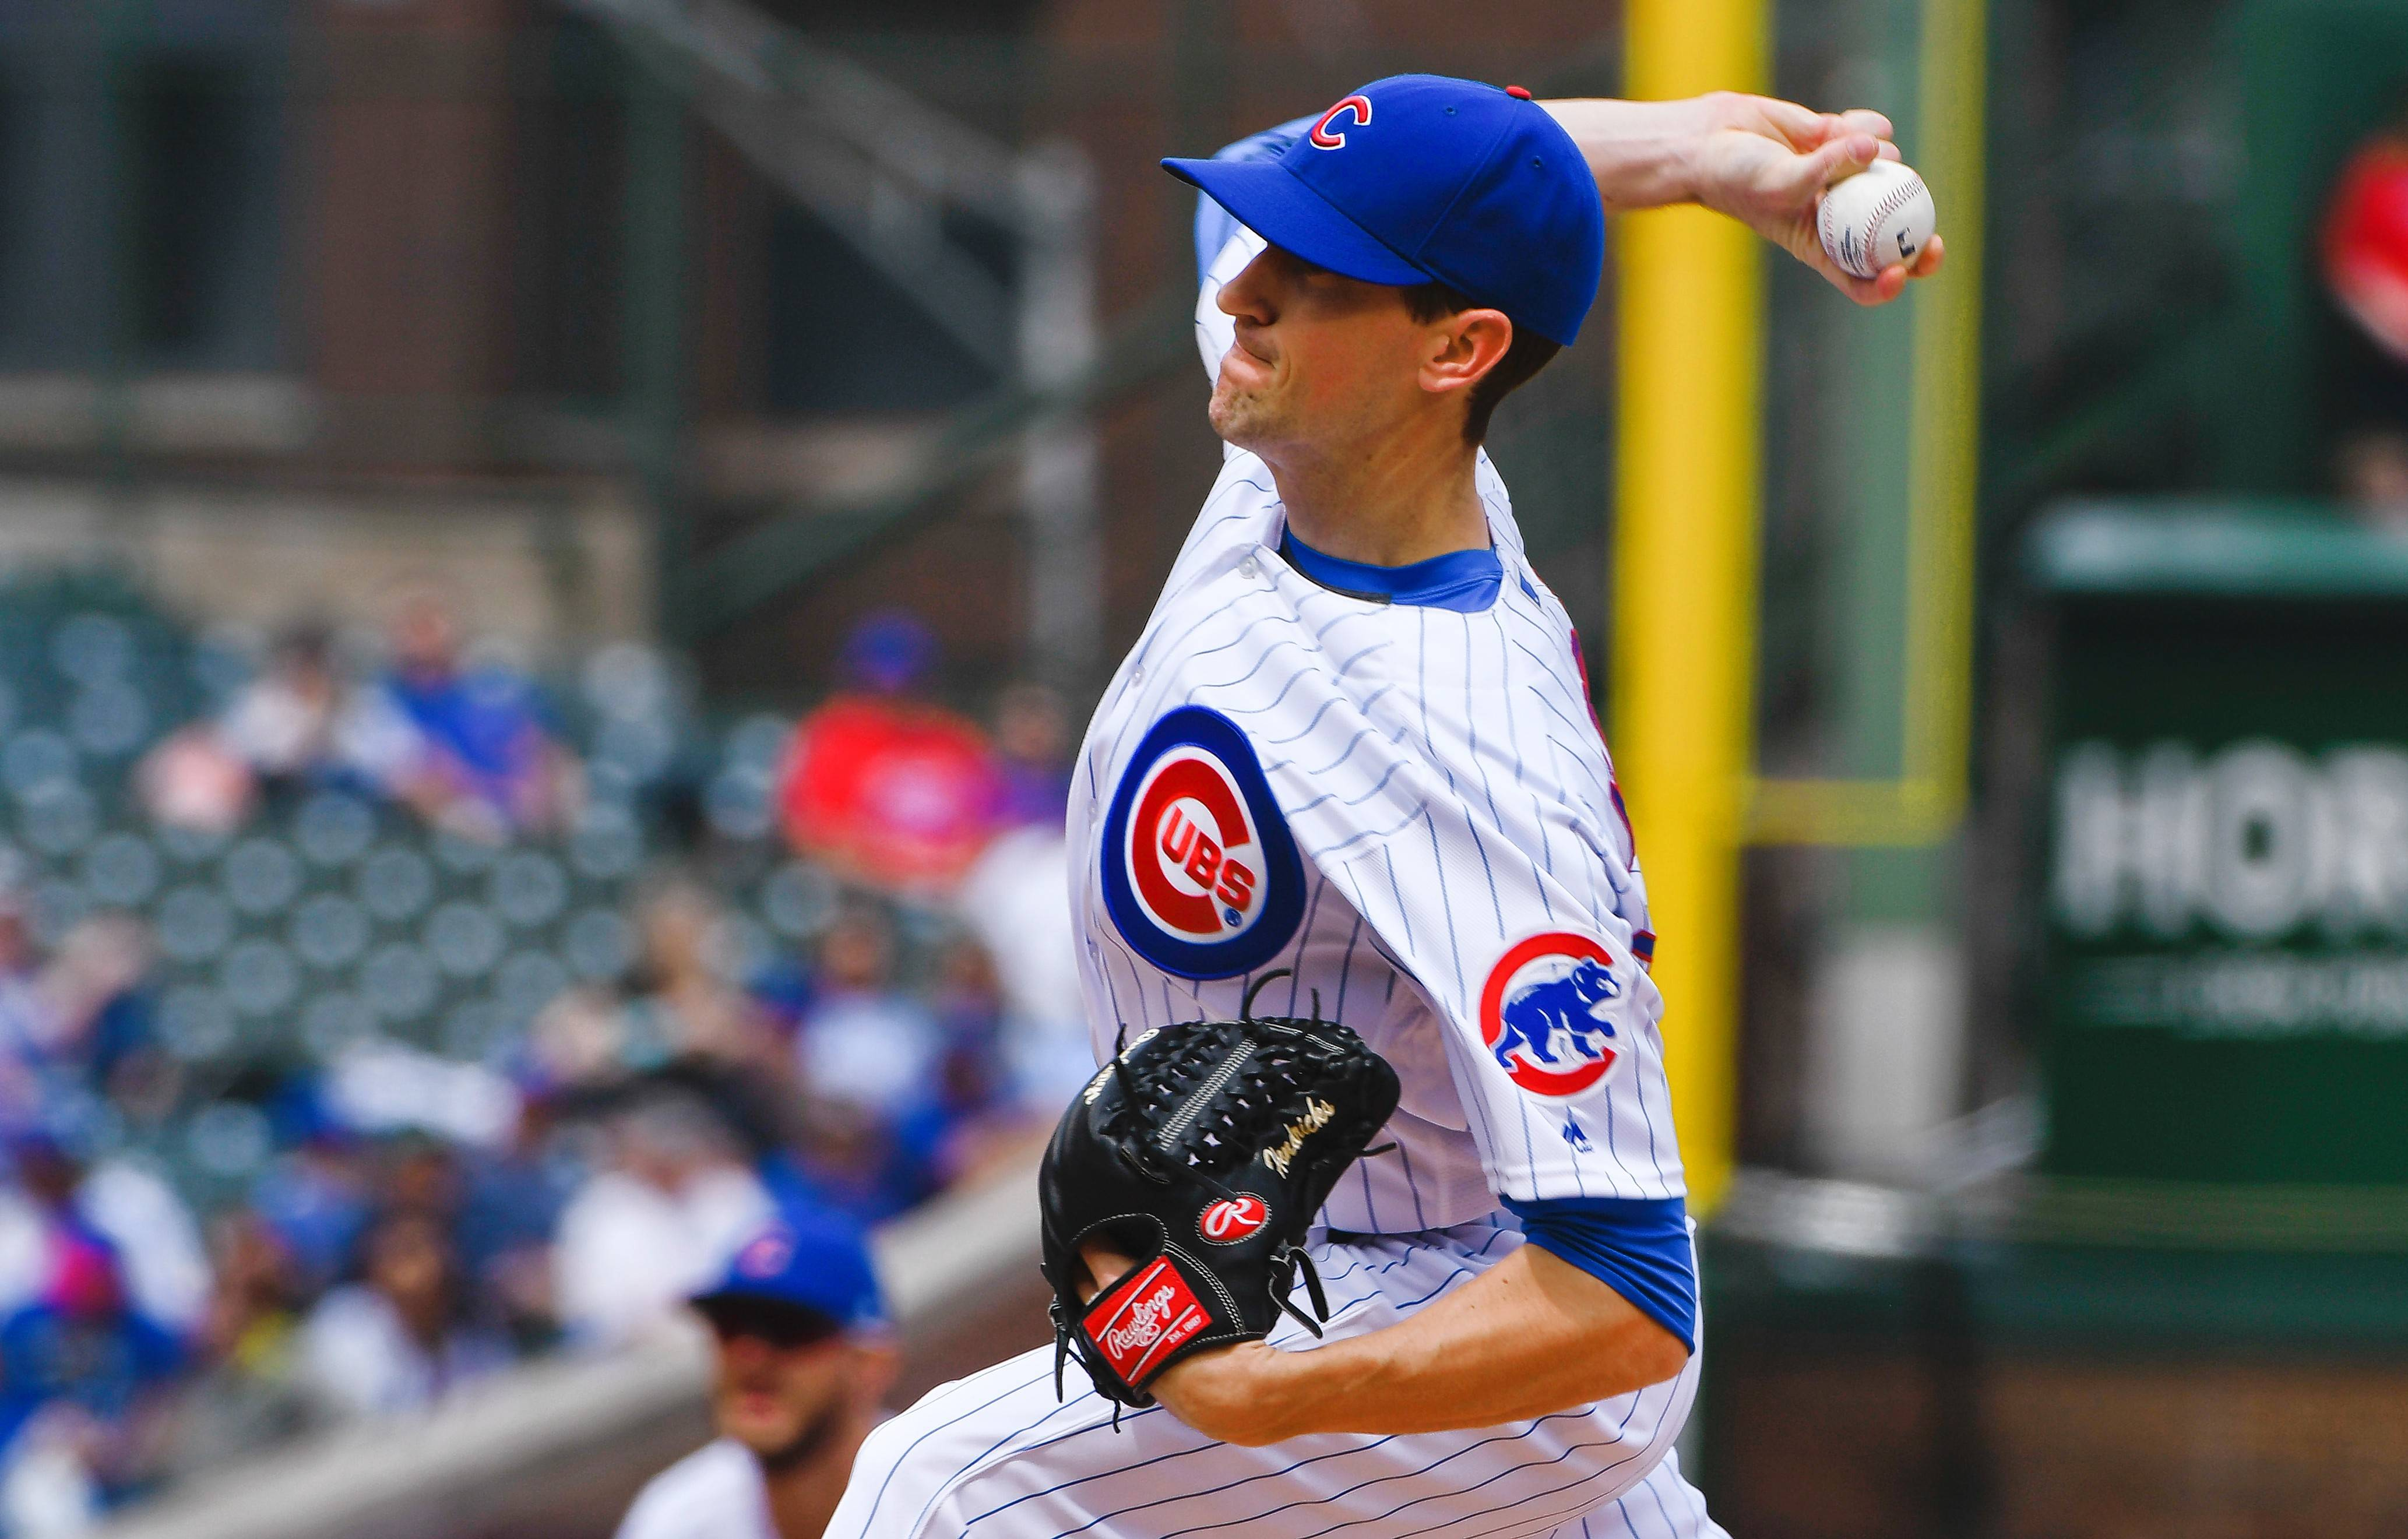 It's been awhile since Kyle Hendricks has pitched, but he'll get the ball in Friday night's series opener in Denver.